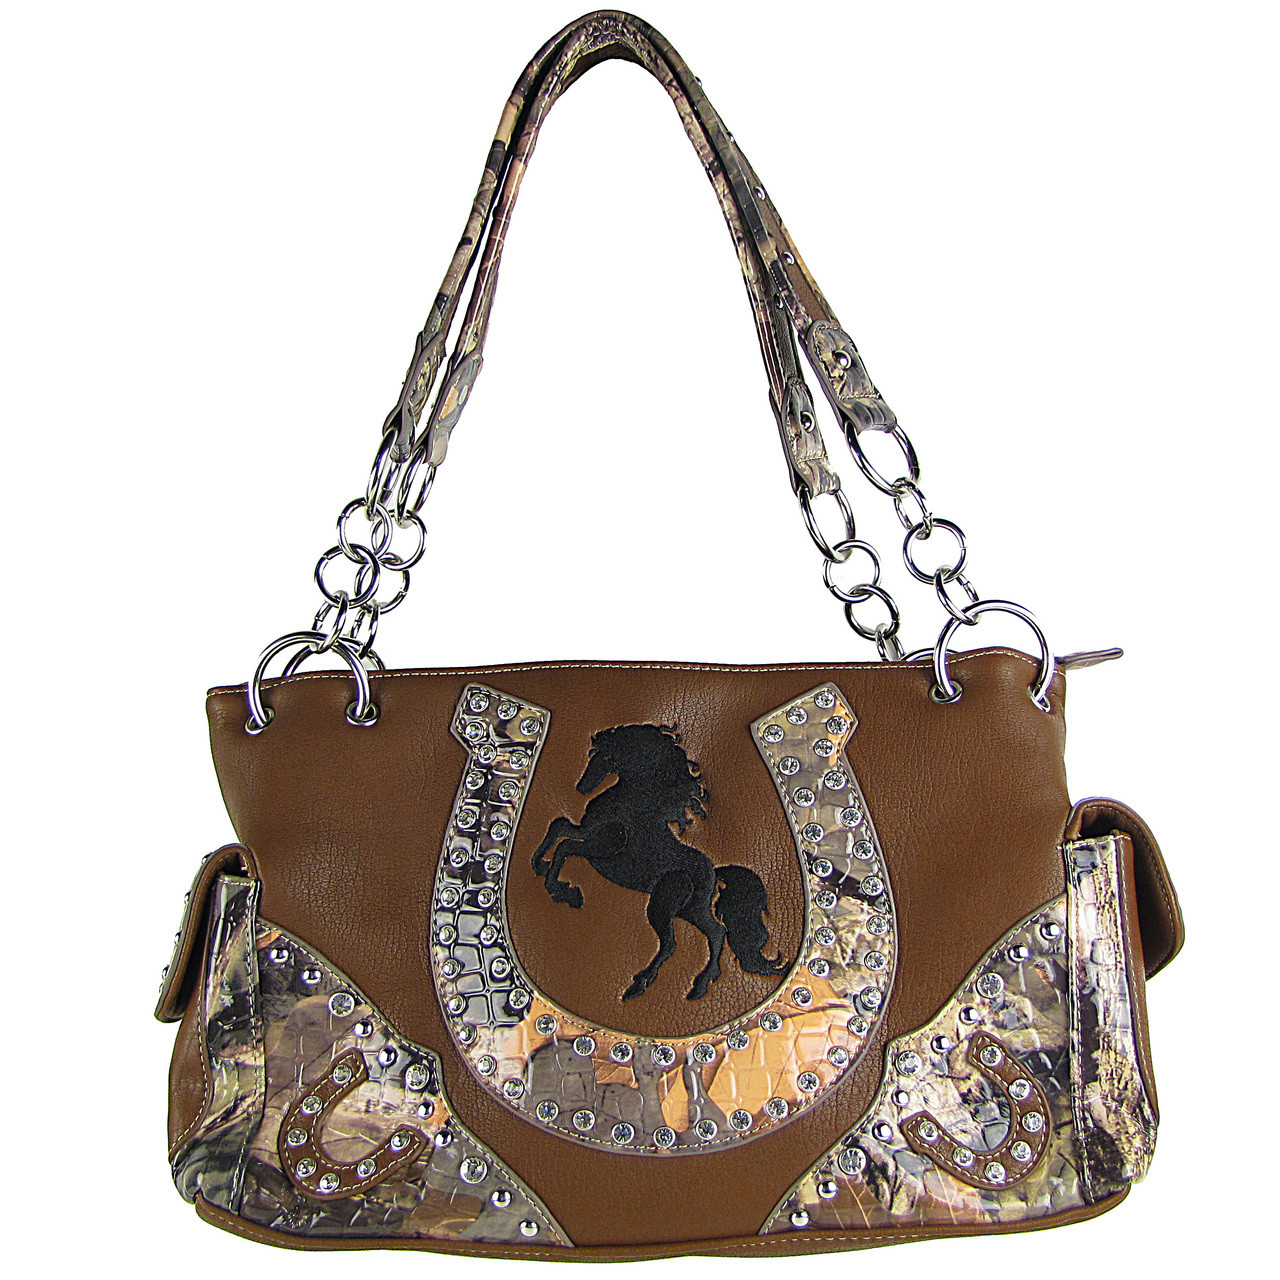 BROWN WESTERN MOSSY CAMO RHINESTONE STUDDED HORSESHOE LOOK SHOULDER HANDBAG HB1-HH392-10BRN